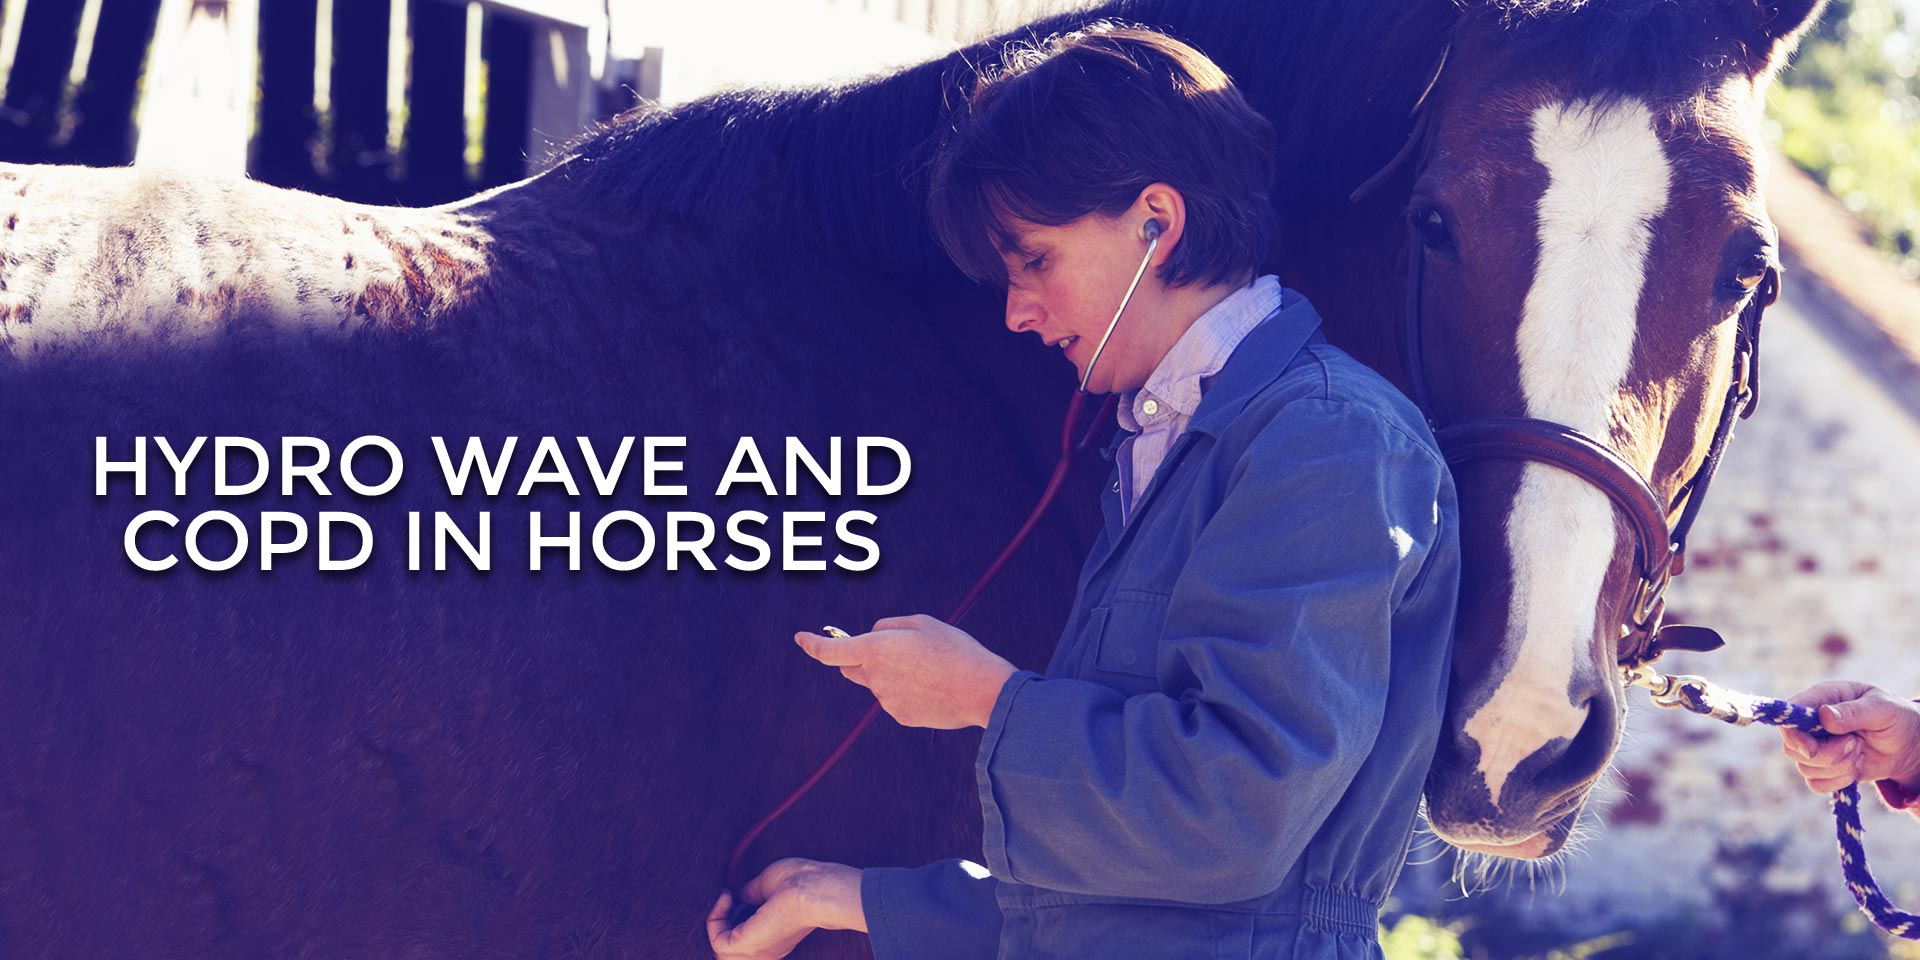 Hydro Wave and COPD in Horses